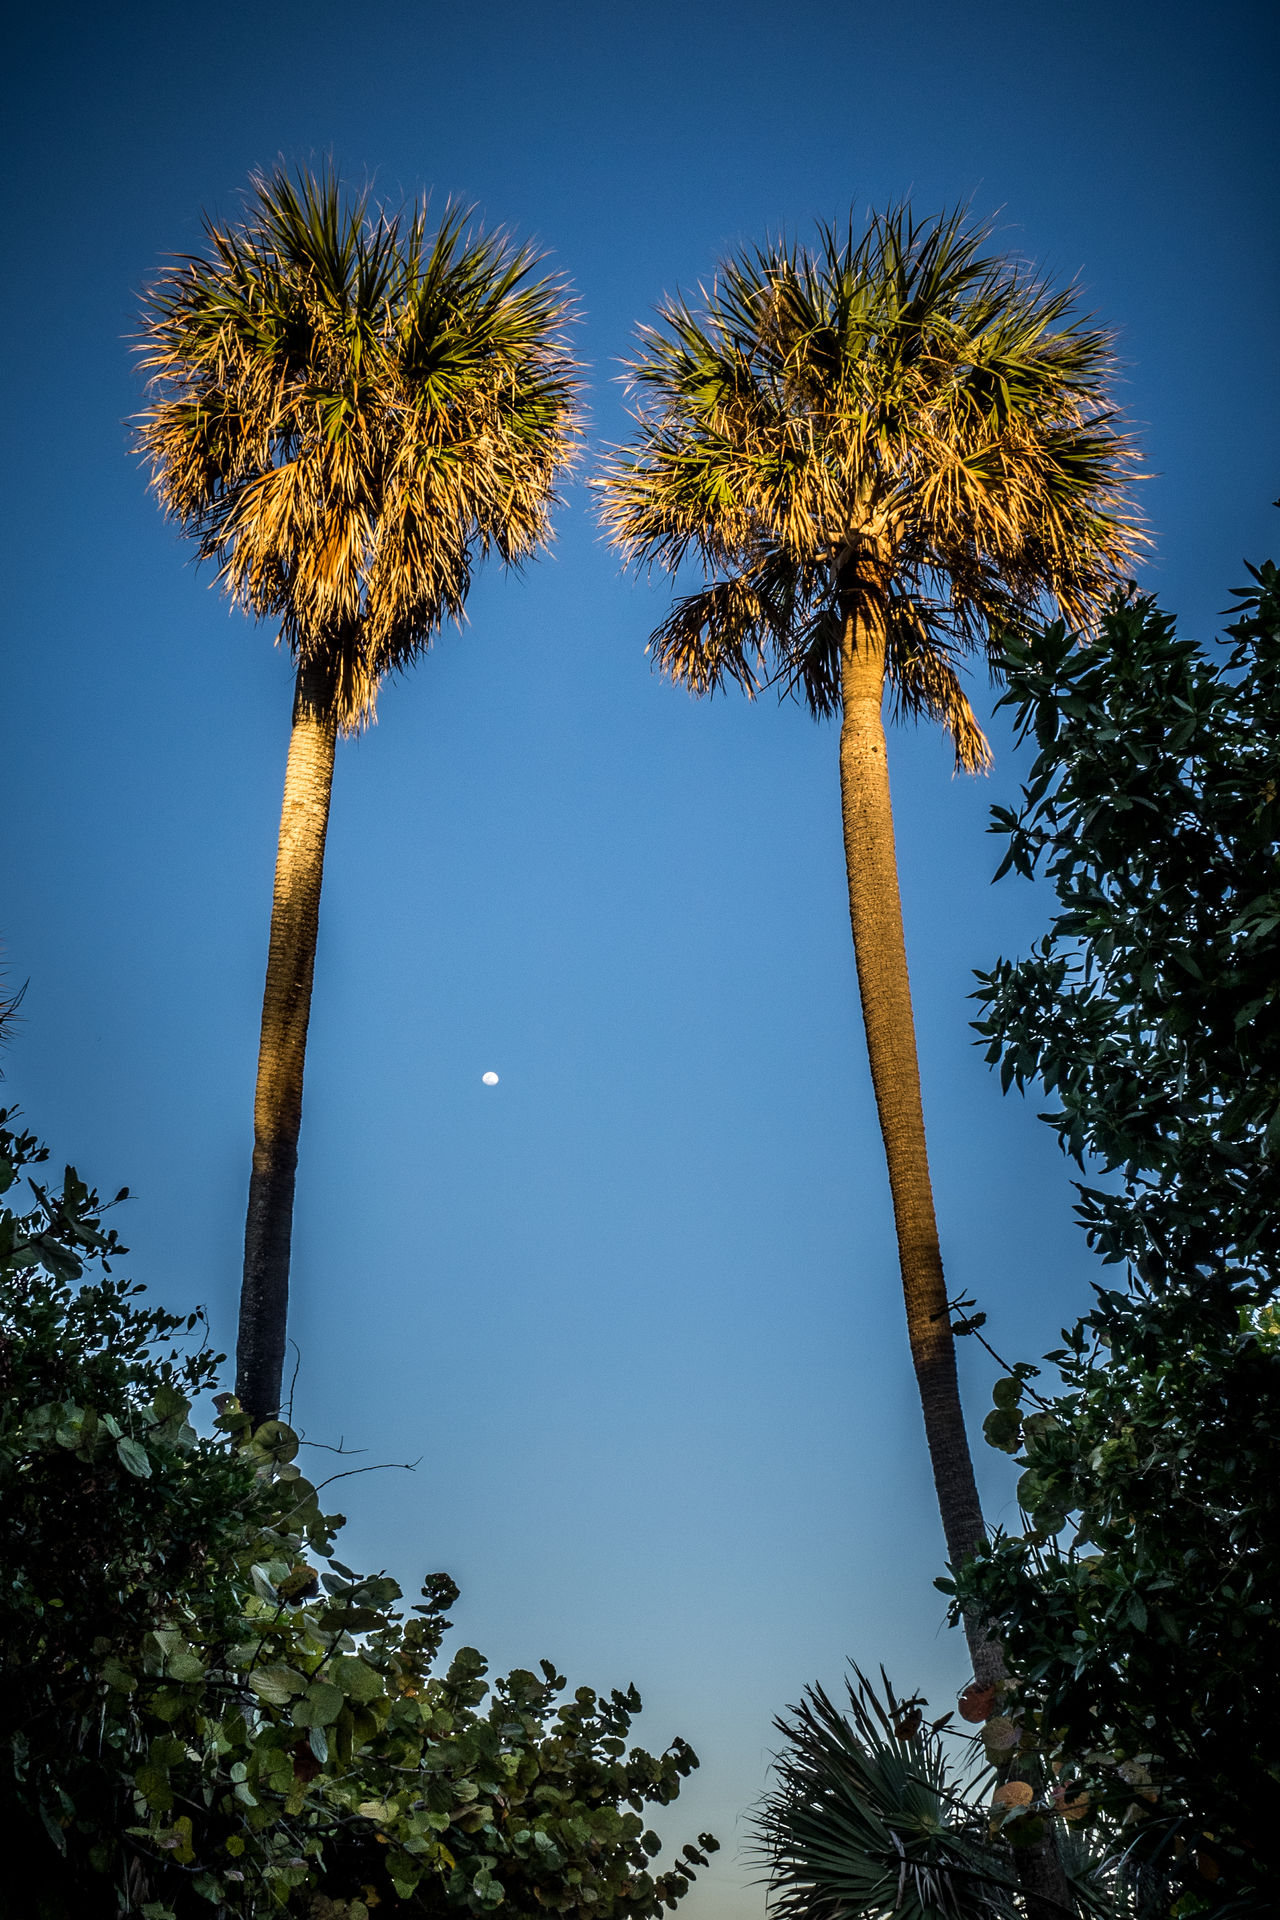 Beach and Palms and Moonlight Beach Beautiful Beauty Beauty In Nature Blue Clear Sky Day Dream Your Dream Florida Fly Me To The Moon Growth Low Angle View Moon Moonlight Palm Tree Sail Away Scenics Sky Sundown Sunset Tranquility Tree Tree Trunk